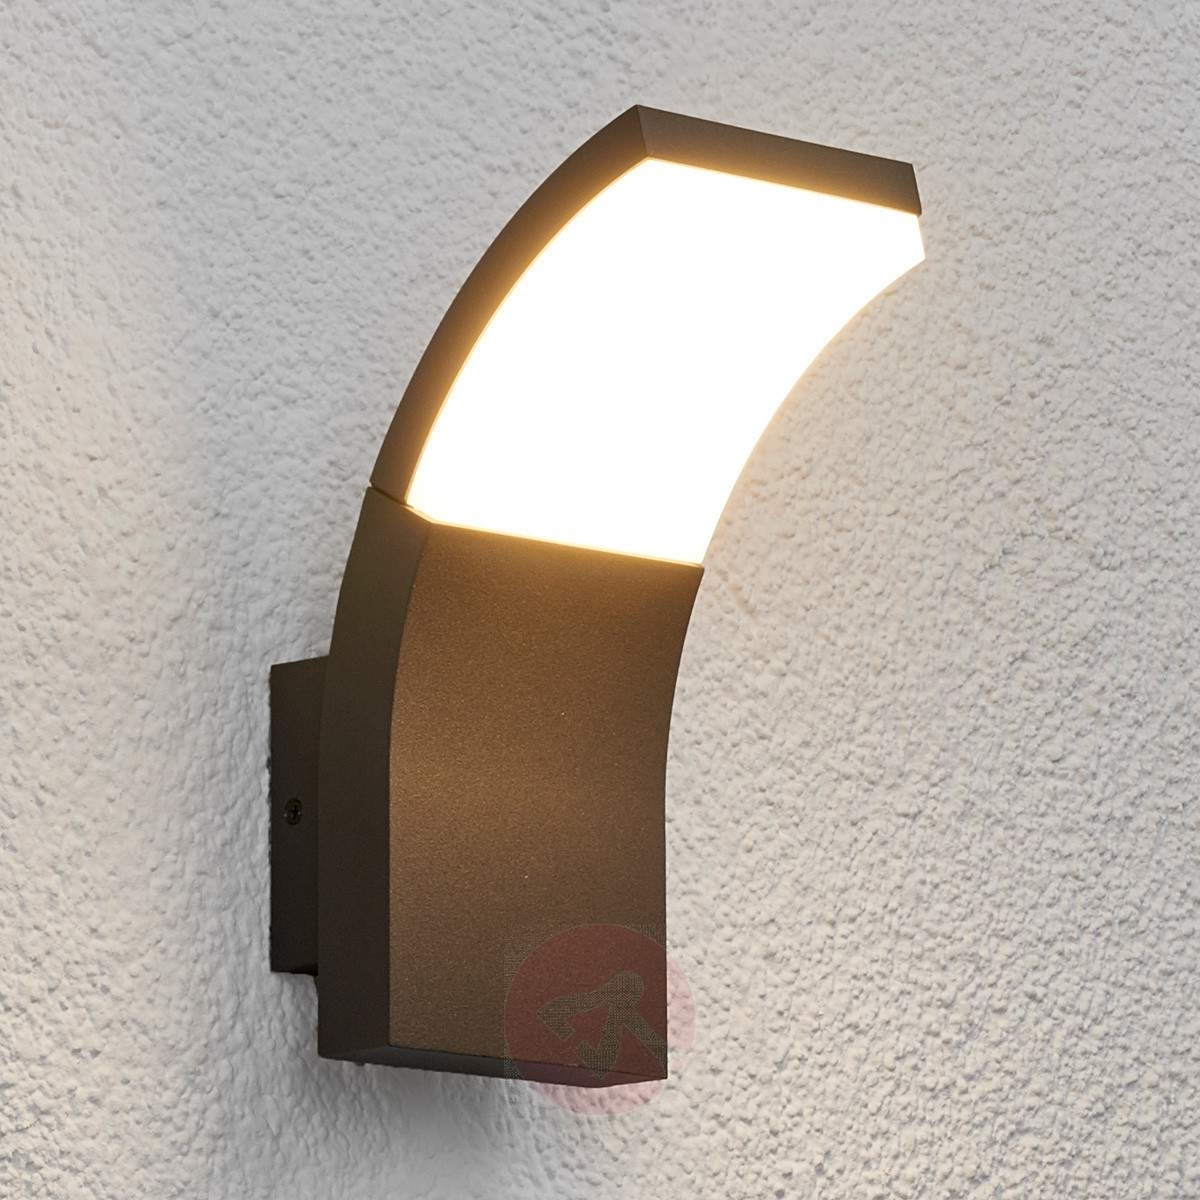 Top 20 of outdoor wall lights at john lewis widely used led outdoor wall light timm lights co uk brilliant led in 4 with outdoor mozeypictures Image collections